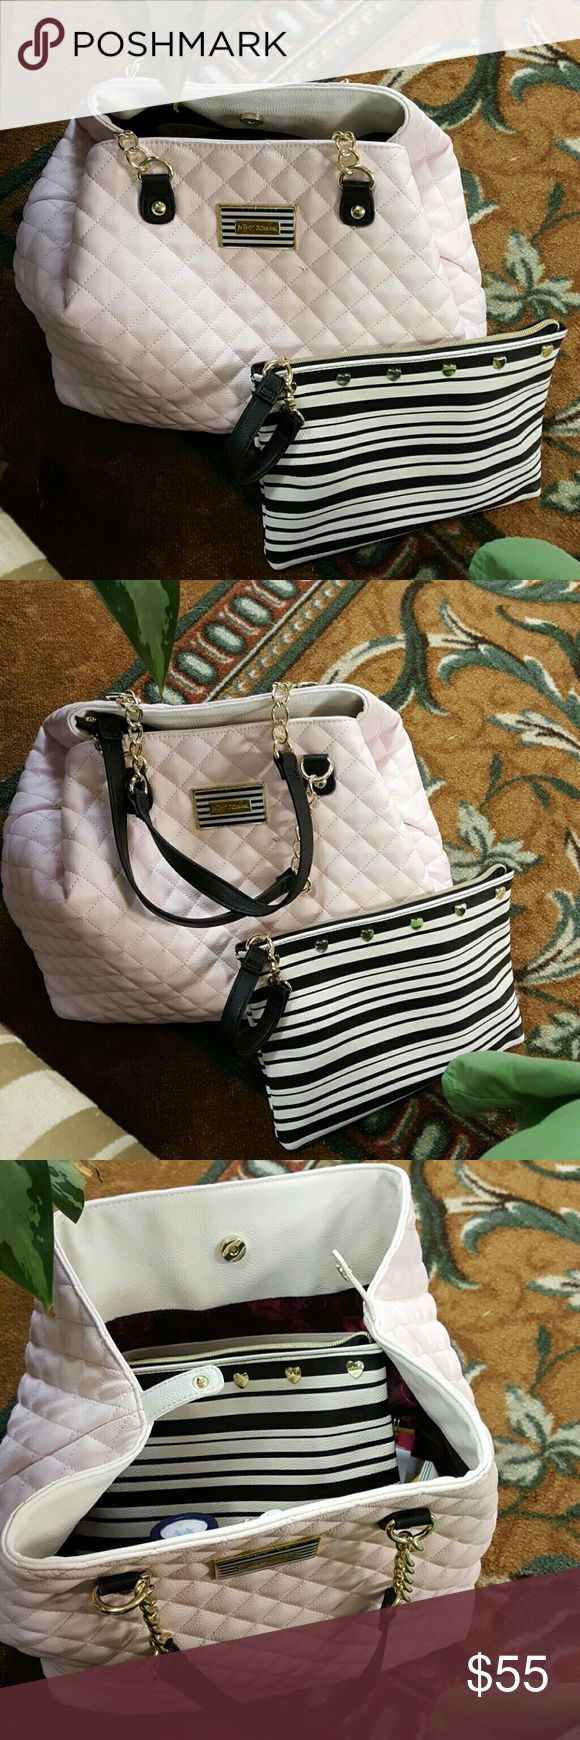 Betsey Johnson handbags with clutch bag Ex large pale pink handbag with black and white stripes clutch bag. Used only twice. Very beautiful. Betsey Johnson Bags Shoulder Bags